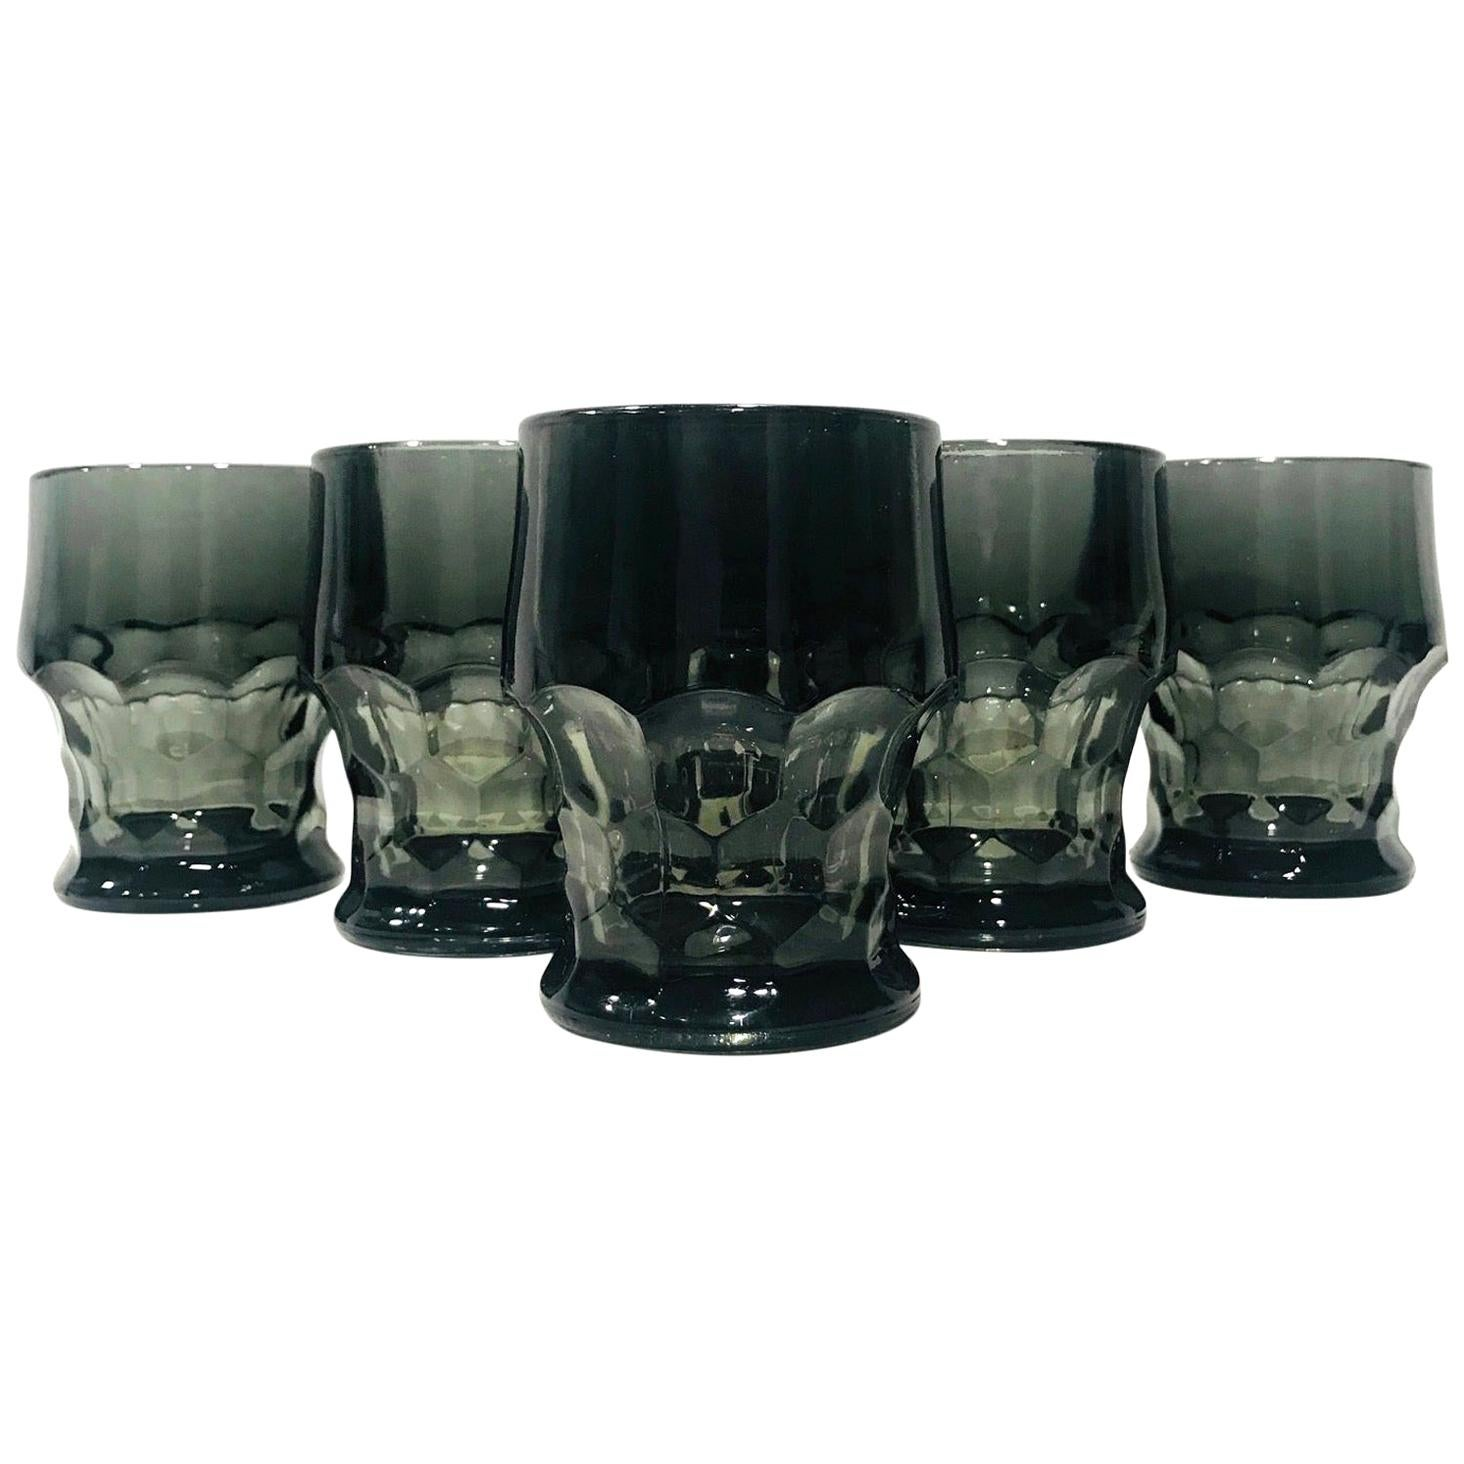 Set of Six Hollywood Regency Gothic Style Barware Glasses in Black, circa 1960s